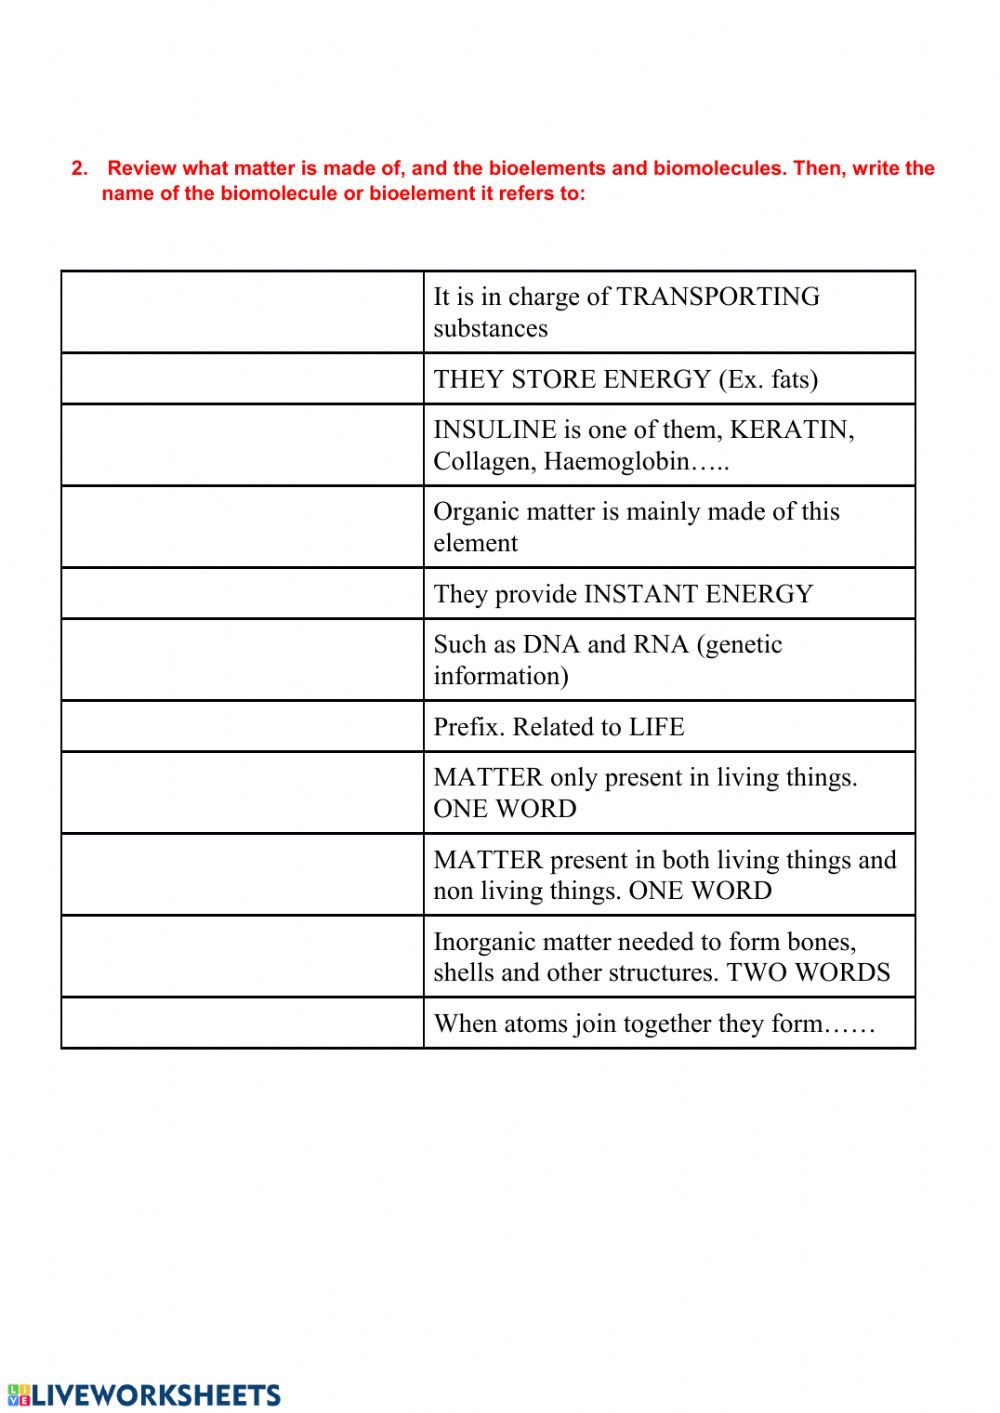 Biological Molecules Worksheet Answers Biomolecules and Cells Interactive Worksheet